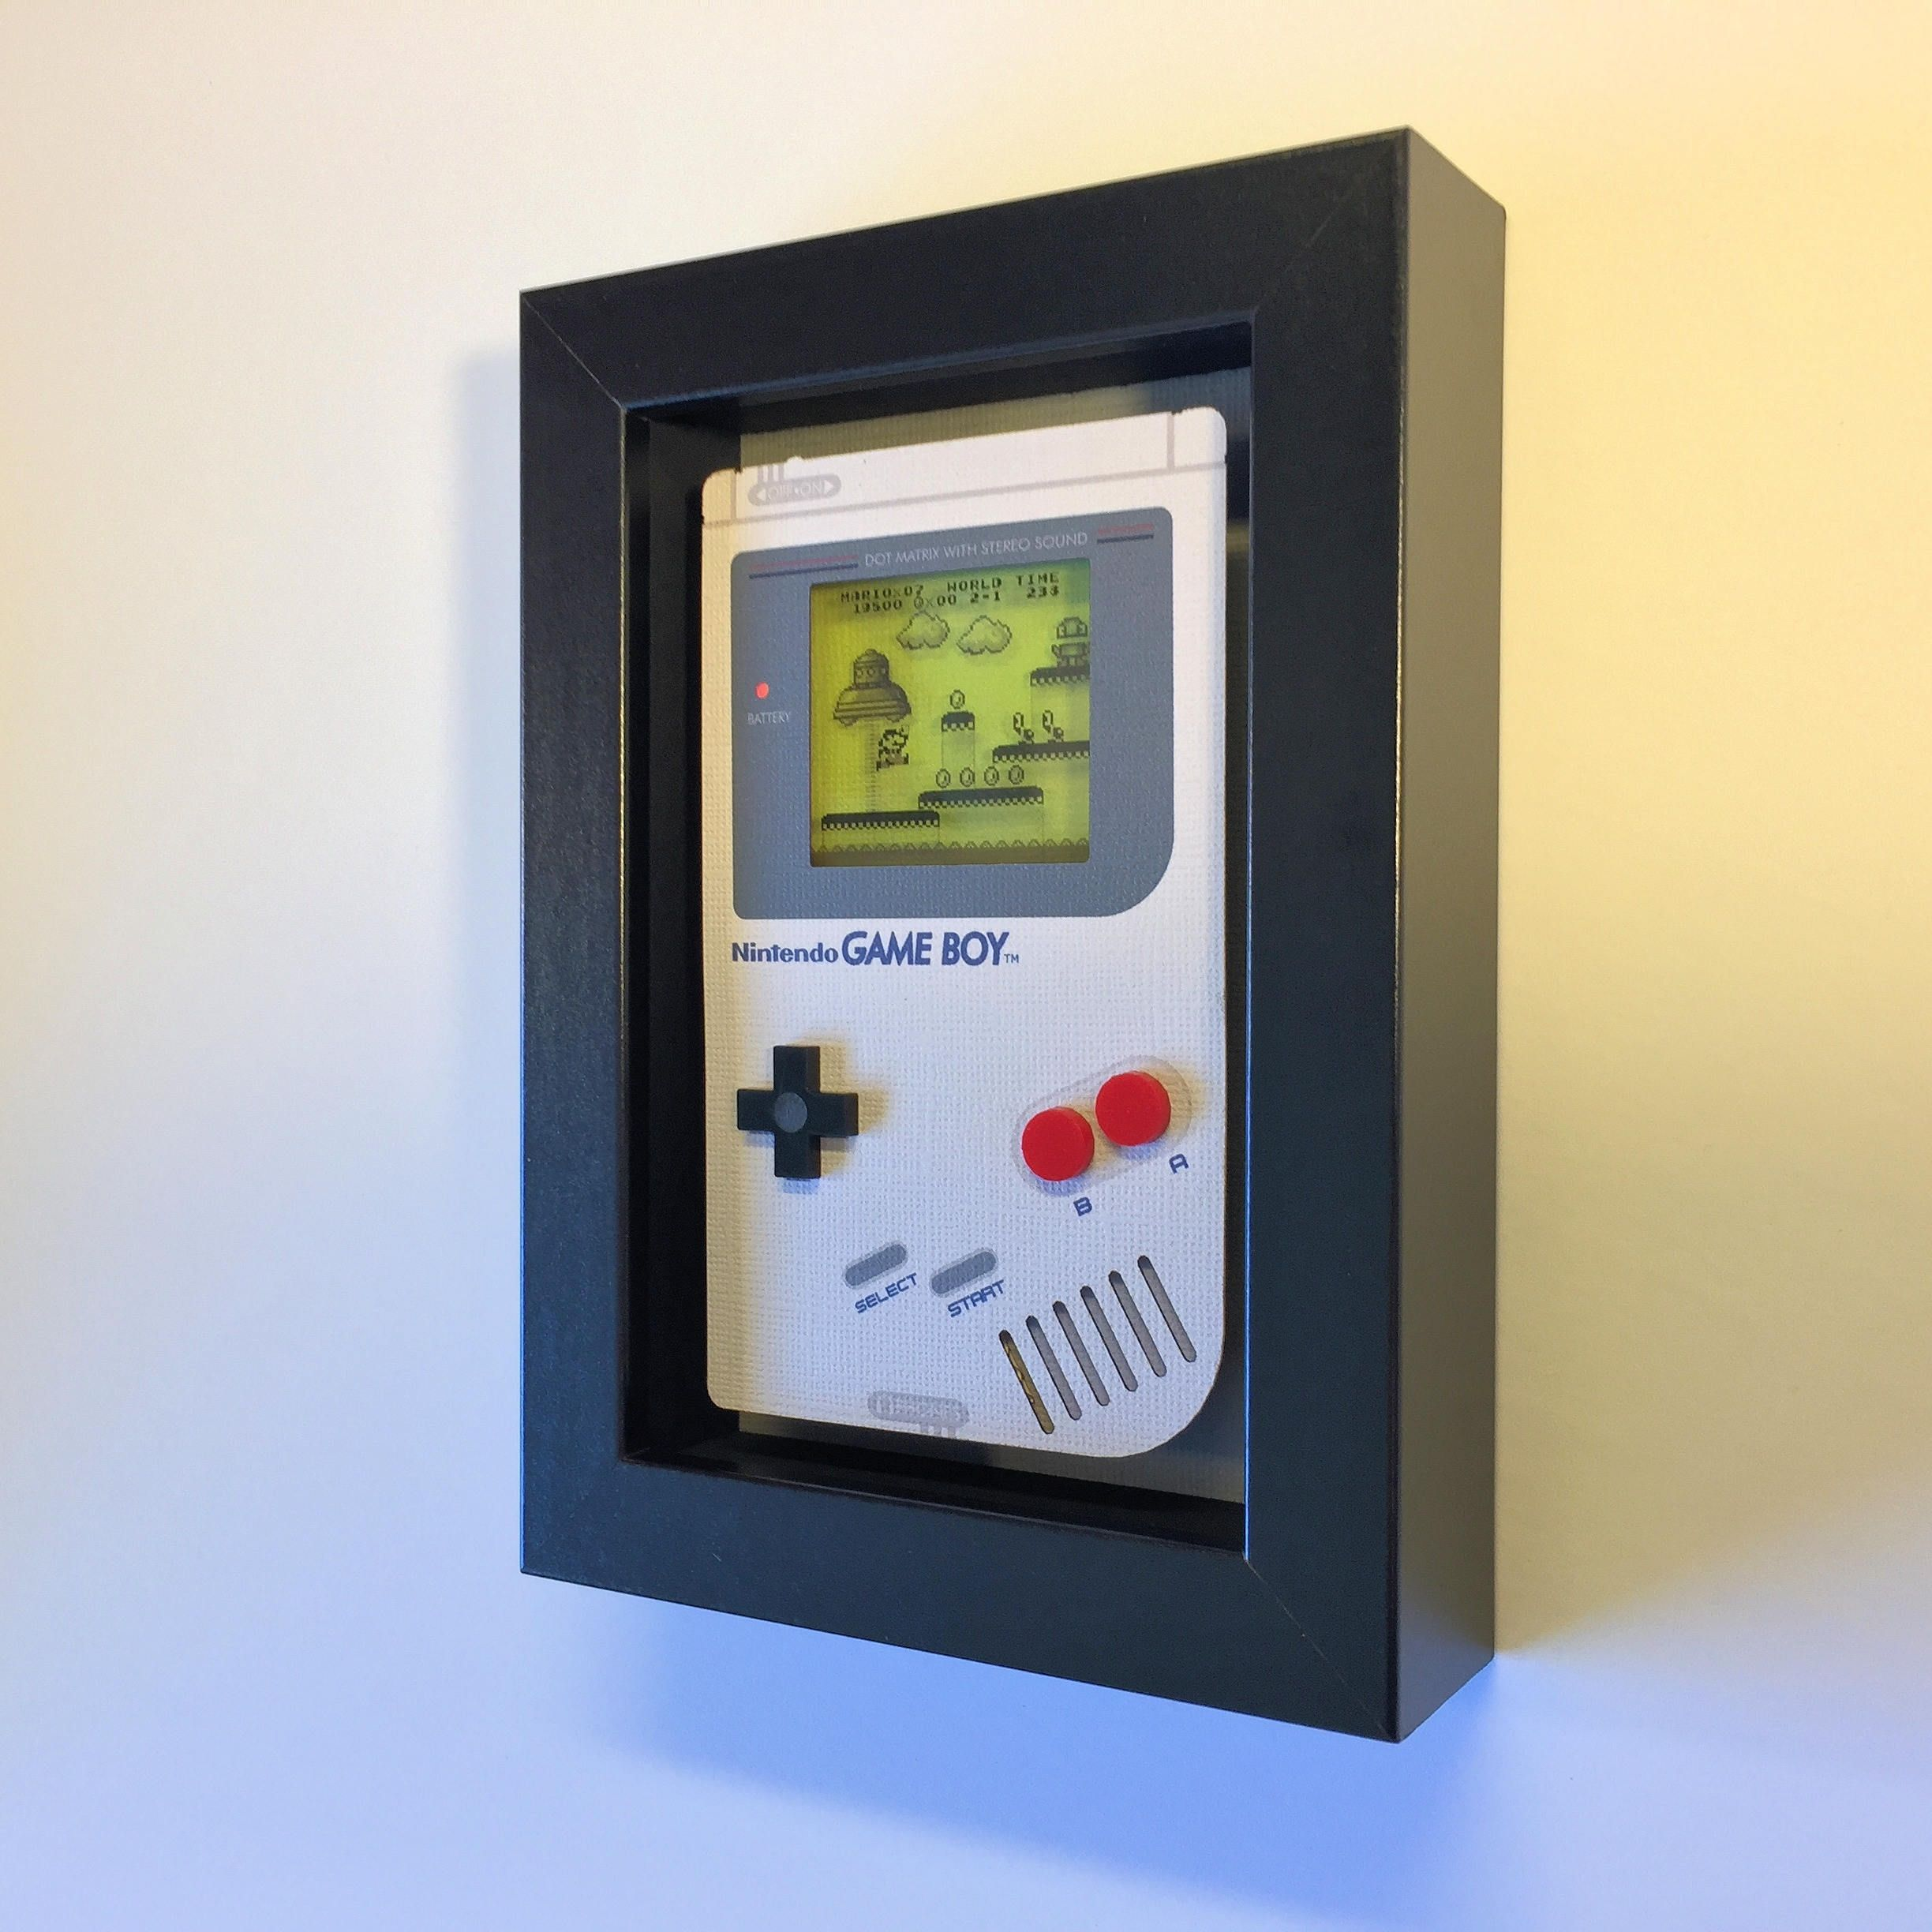 Super Mario Land Nintendo Game Boy Shadowbox Art Sculpture Etsy Shadow Box Art Gameboy Shadow Box